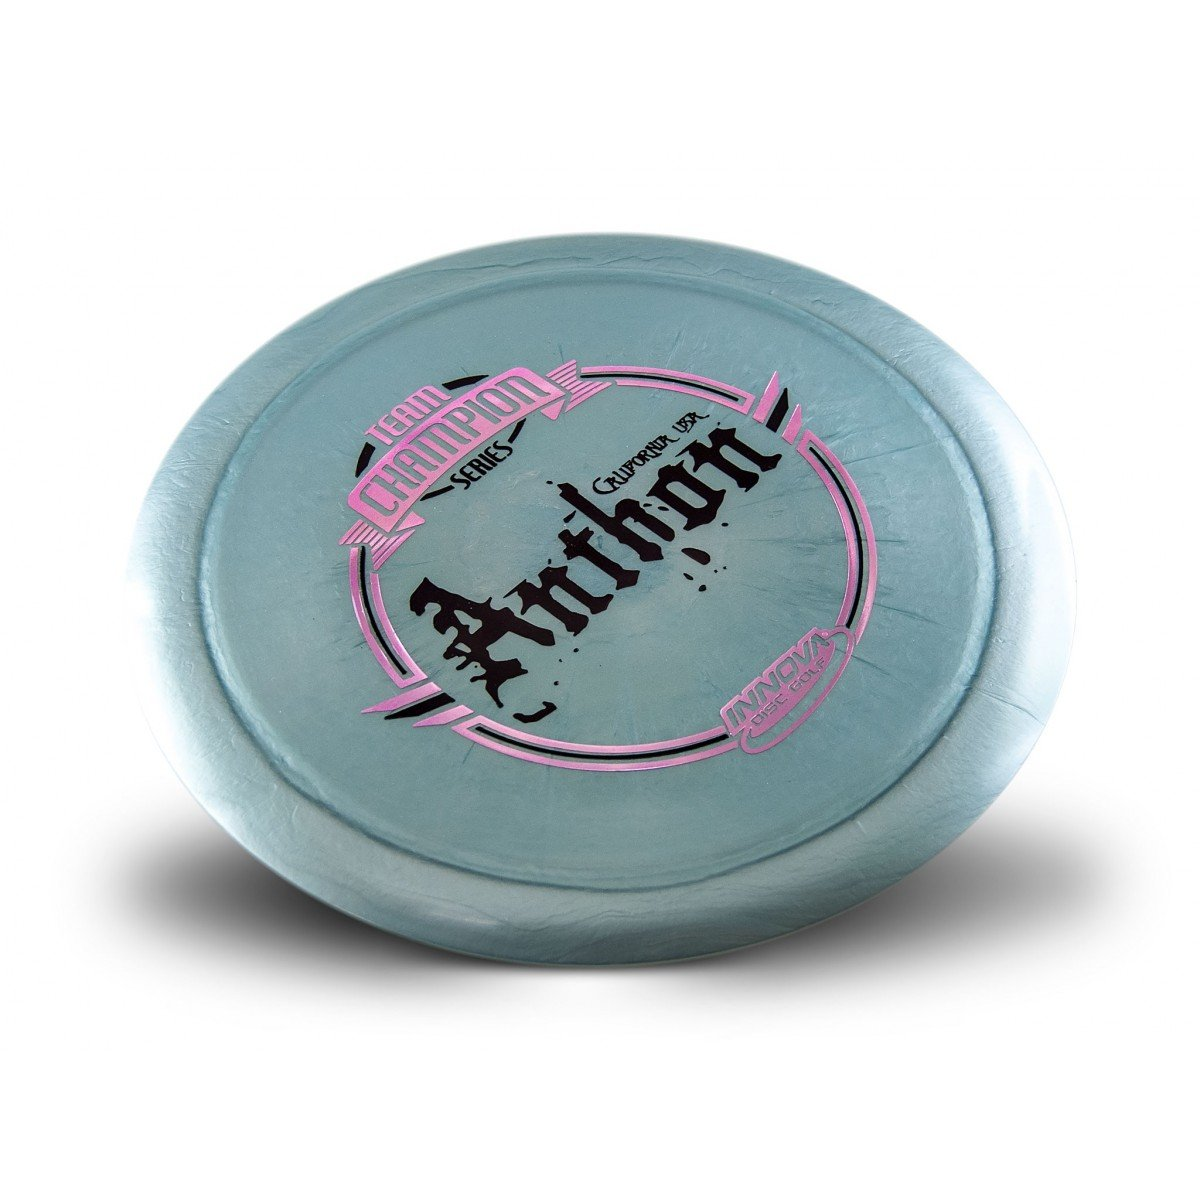 Innova Limited Edition Team Champion Tour Series Josh Anthon Shimmer Star Destroyer Disc Golf Distance Driver (Stamp colors may vary) (Silver)